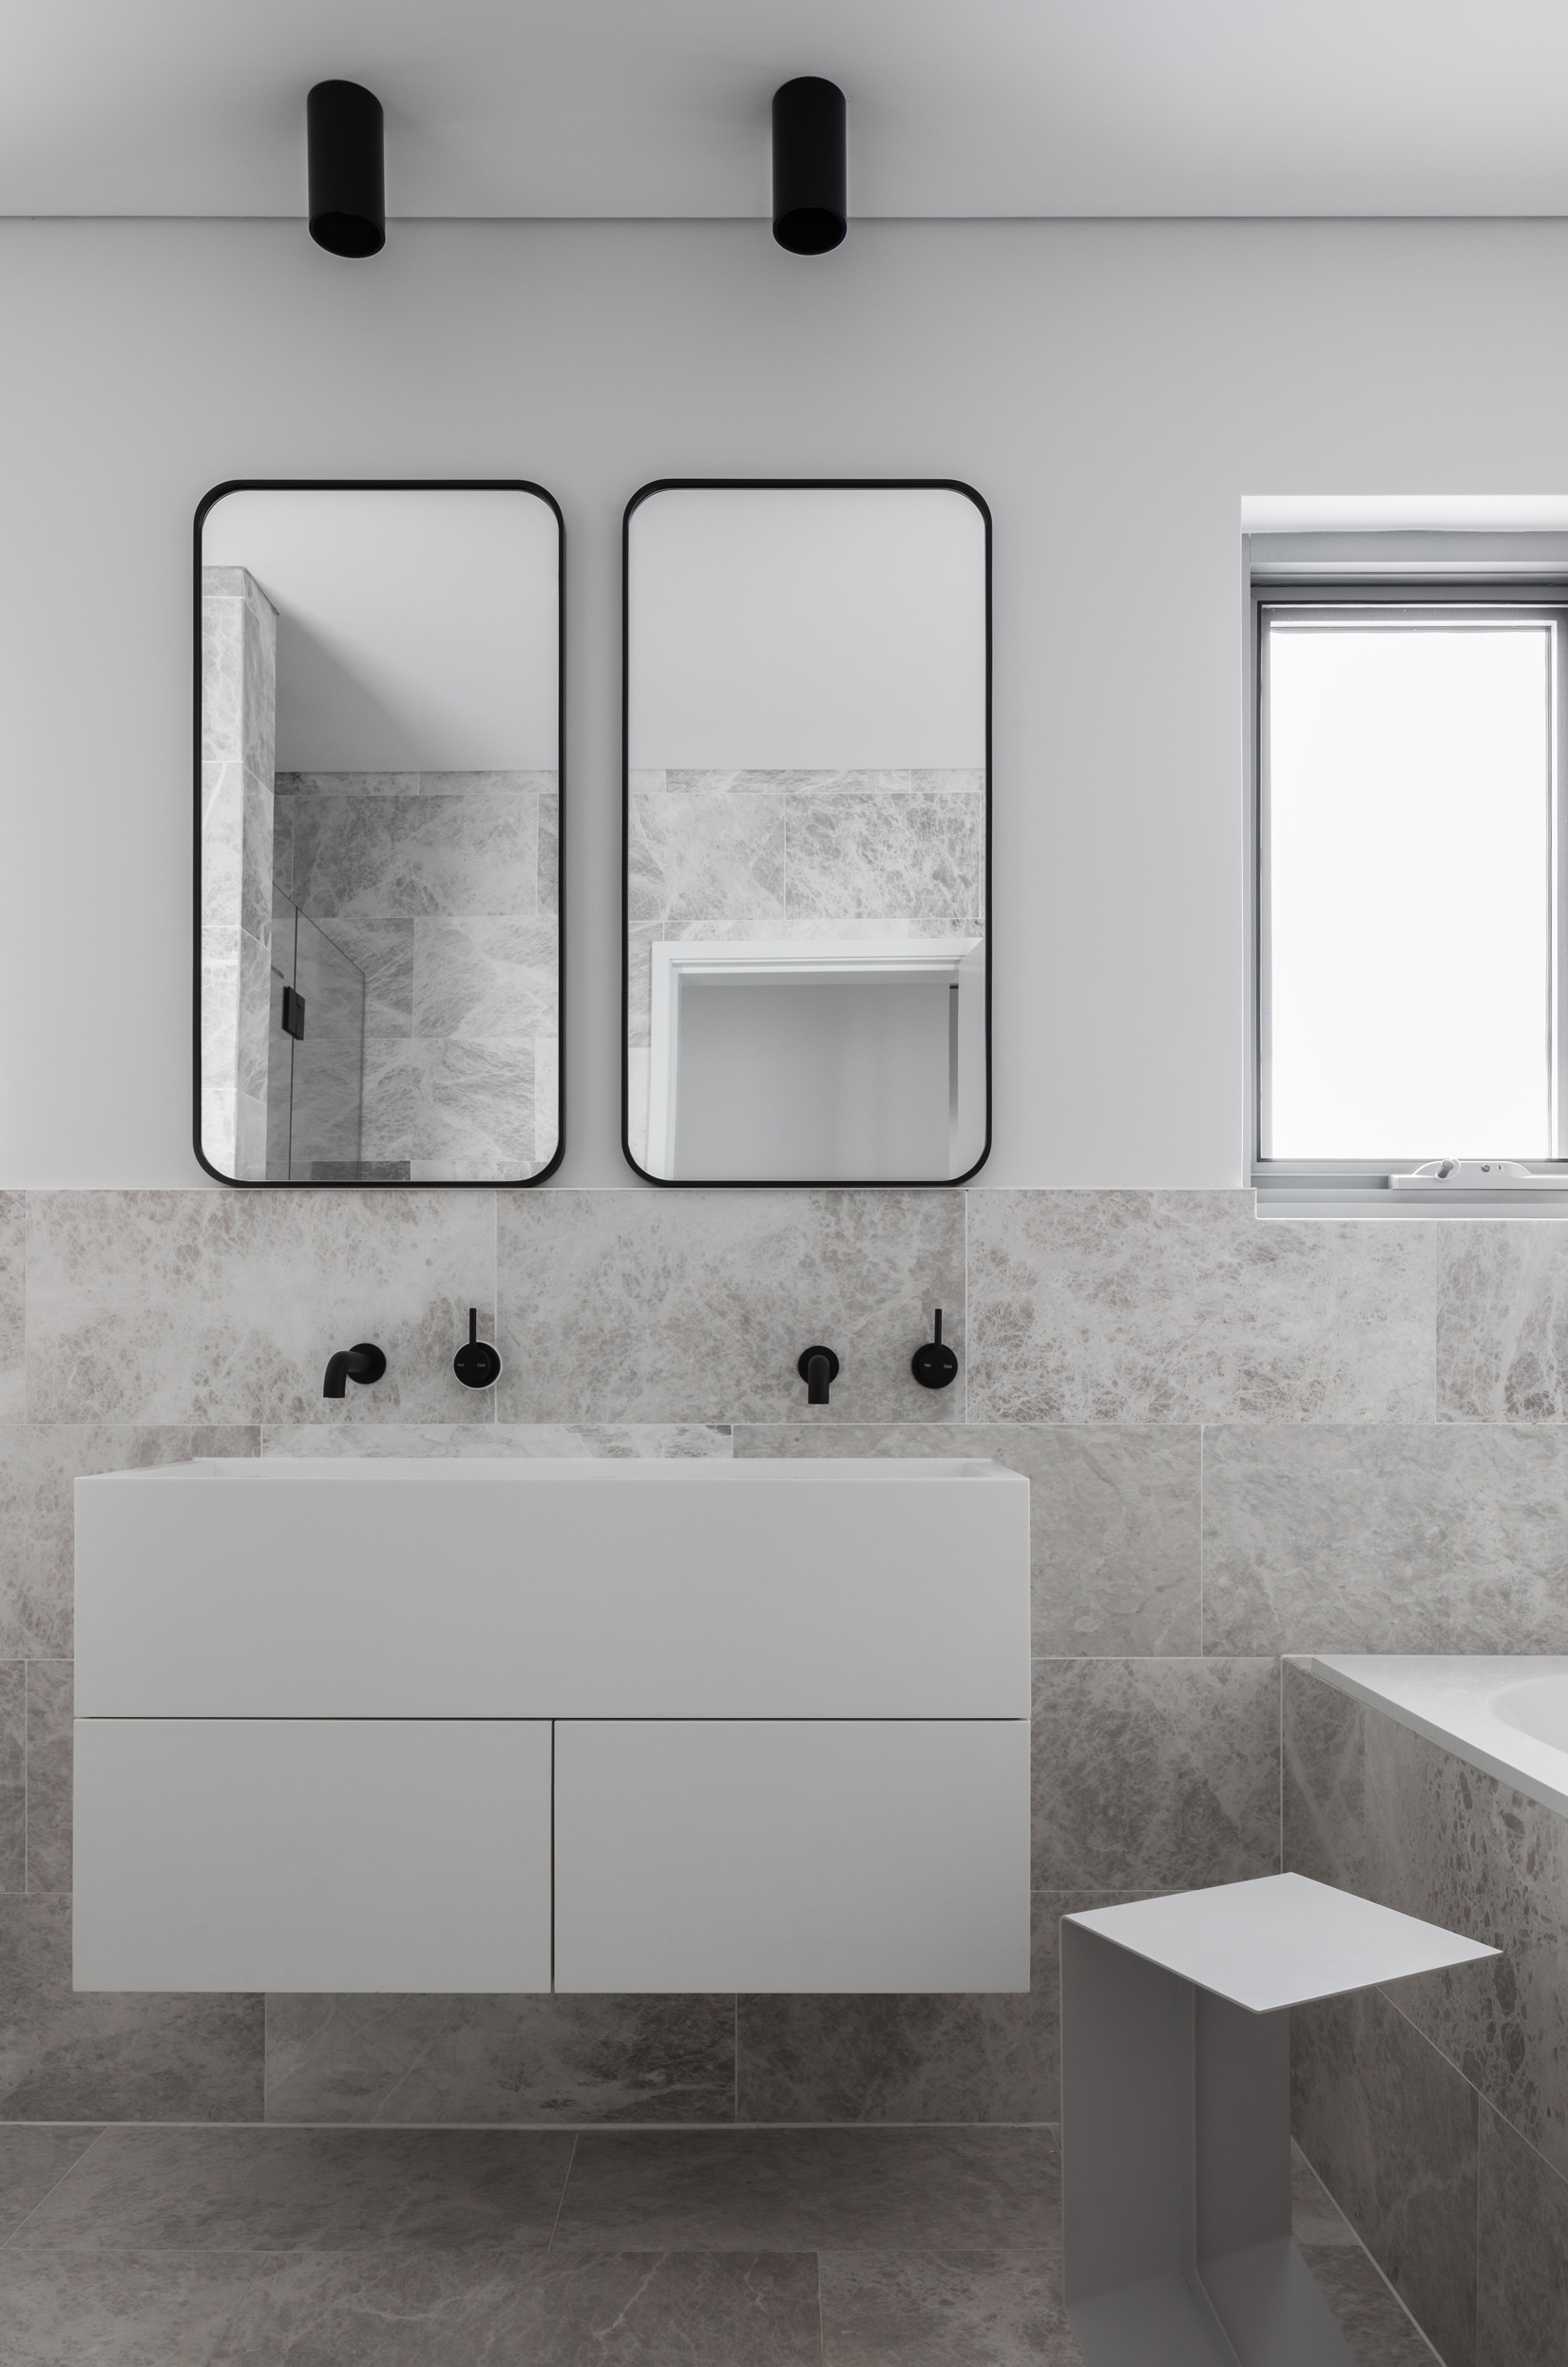 Broad Residence By Baldwin & Bagnall Local Kitchen Design And Interior Bathrooms Sydney,nsw Image 11